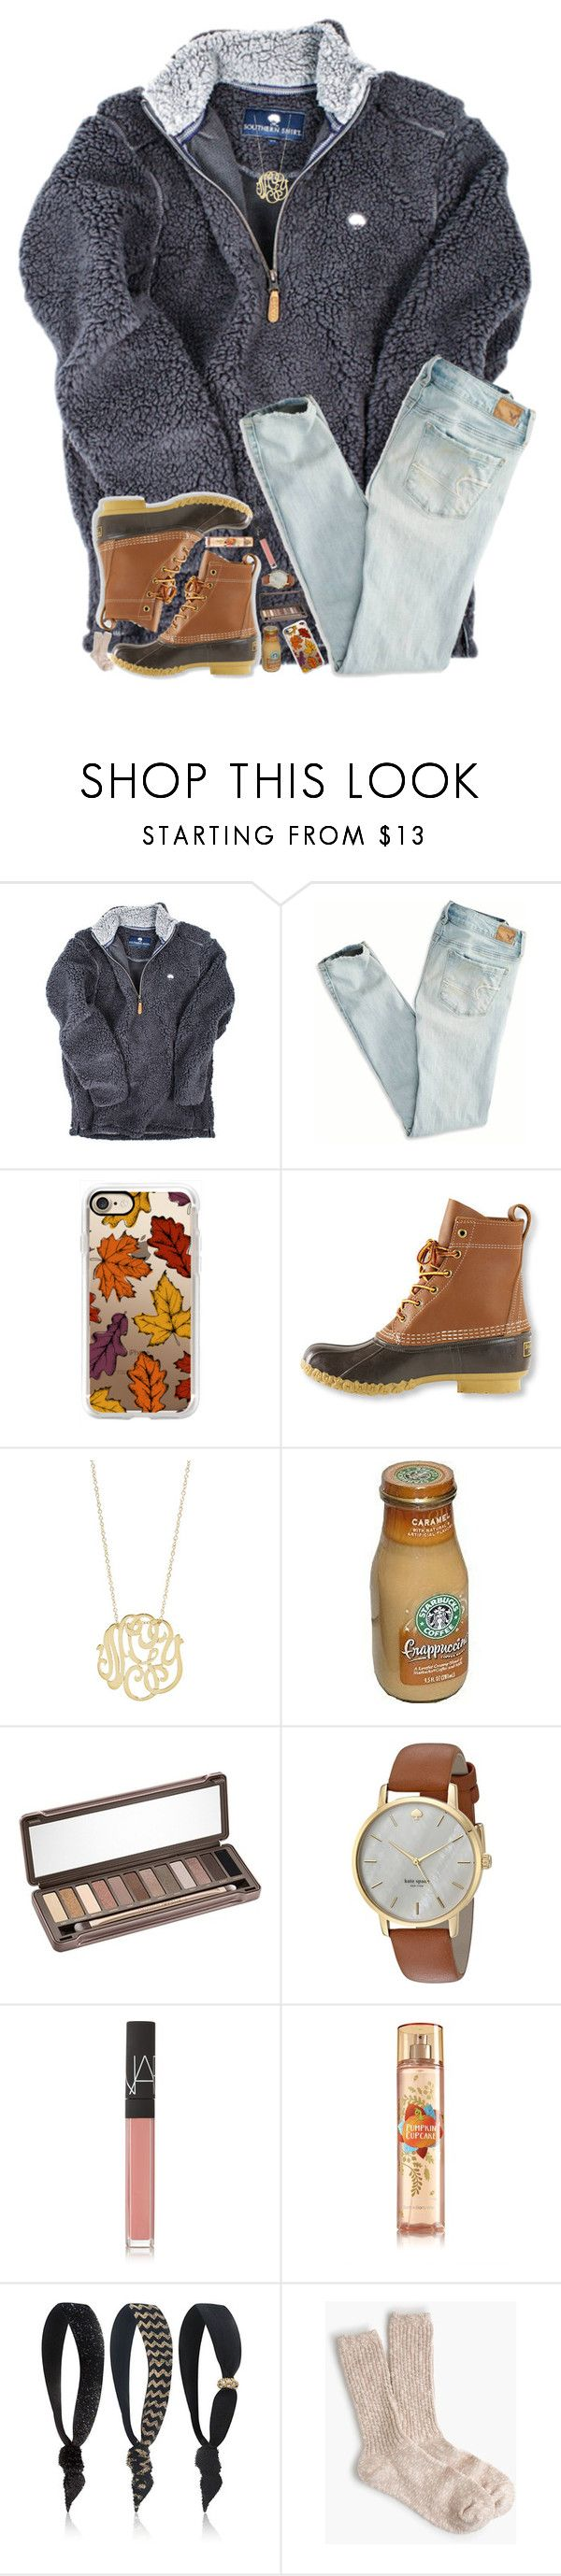 """This looks like a very cozy outfit"" by hgw8503 ❤ liked on Polyvore featuring American Eagle Outfitters, Casetify, L.L.Bean, Ginette NY, Urban Decay, Kate Spade, NARS Cosmetics, Dye Ties and J.Crew"